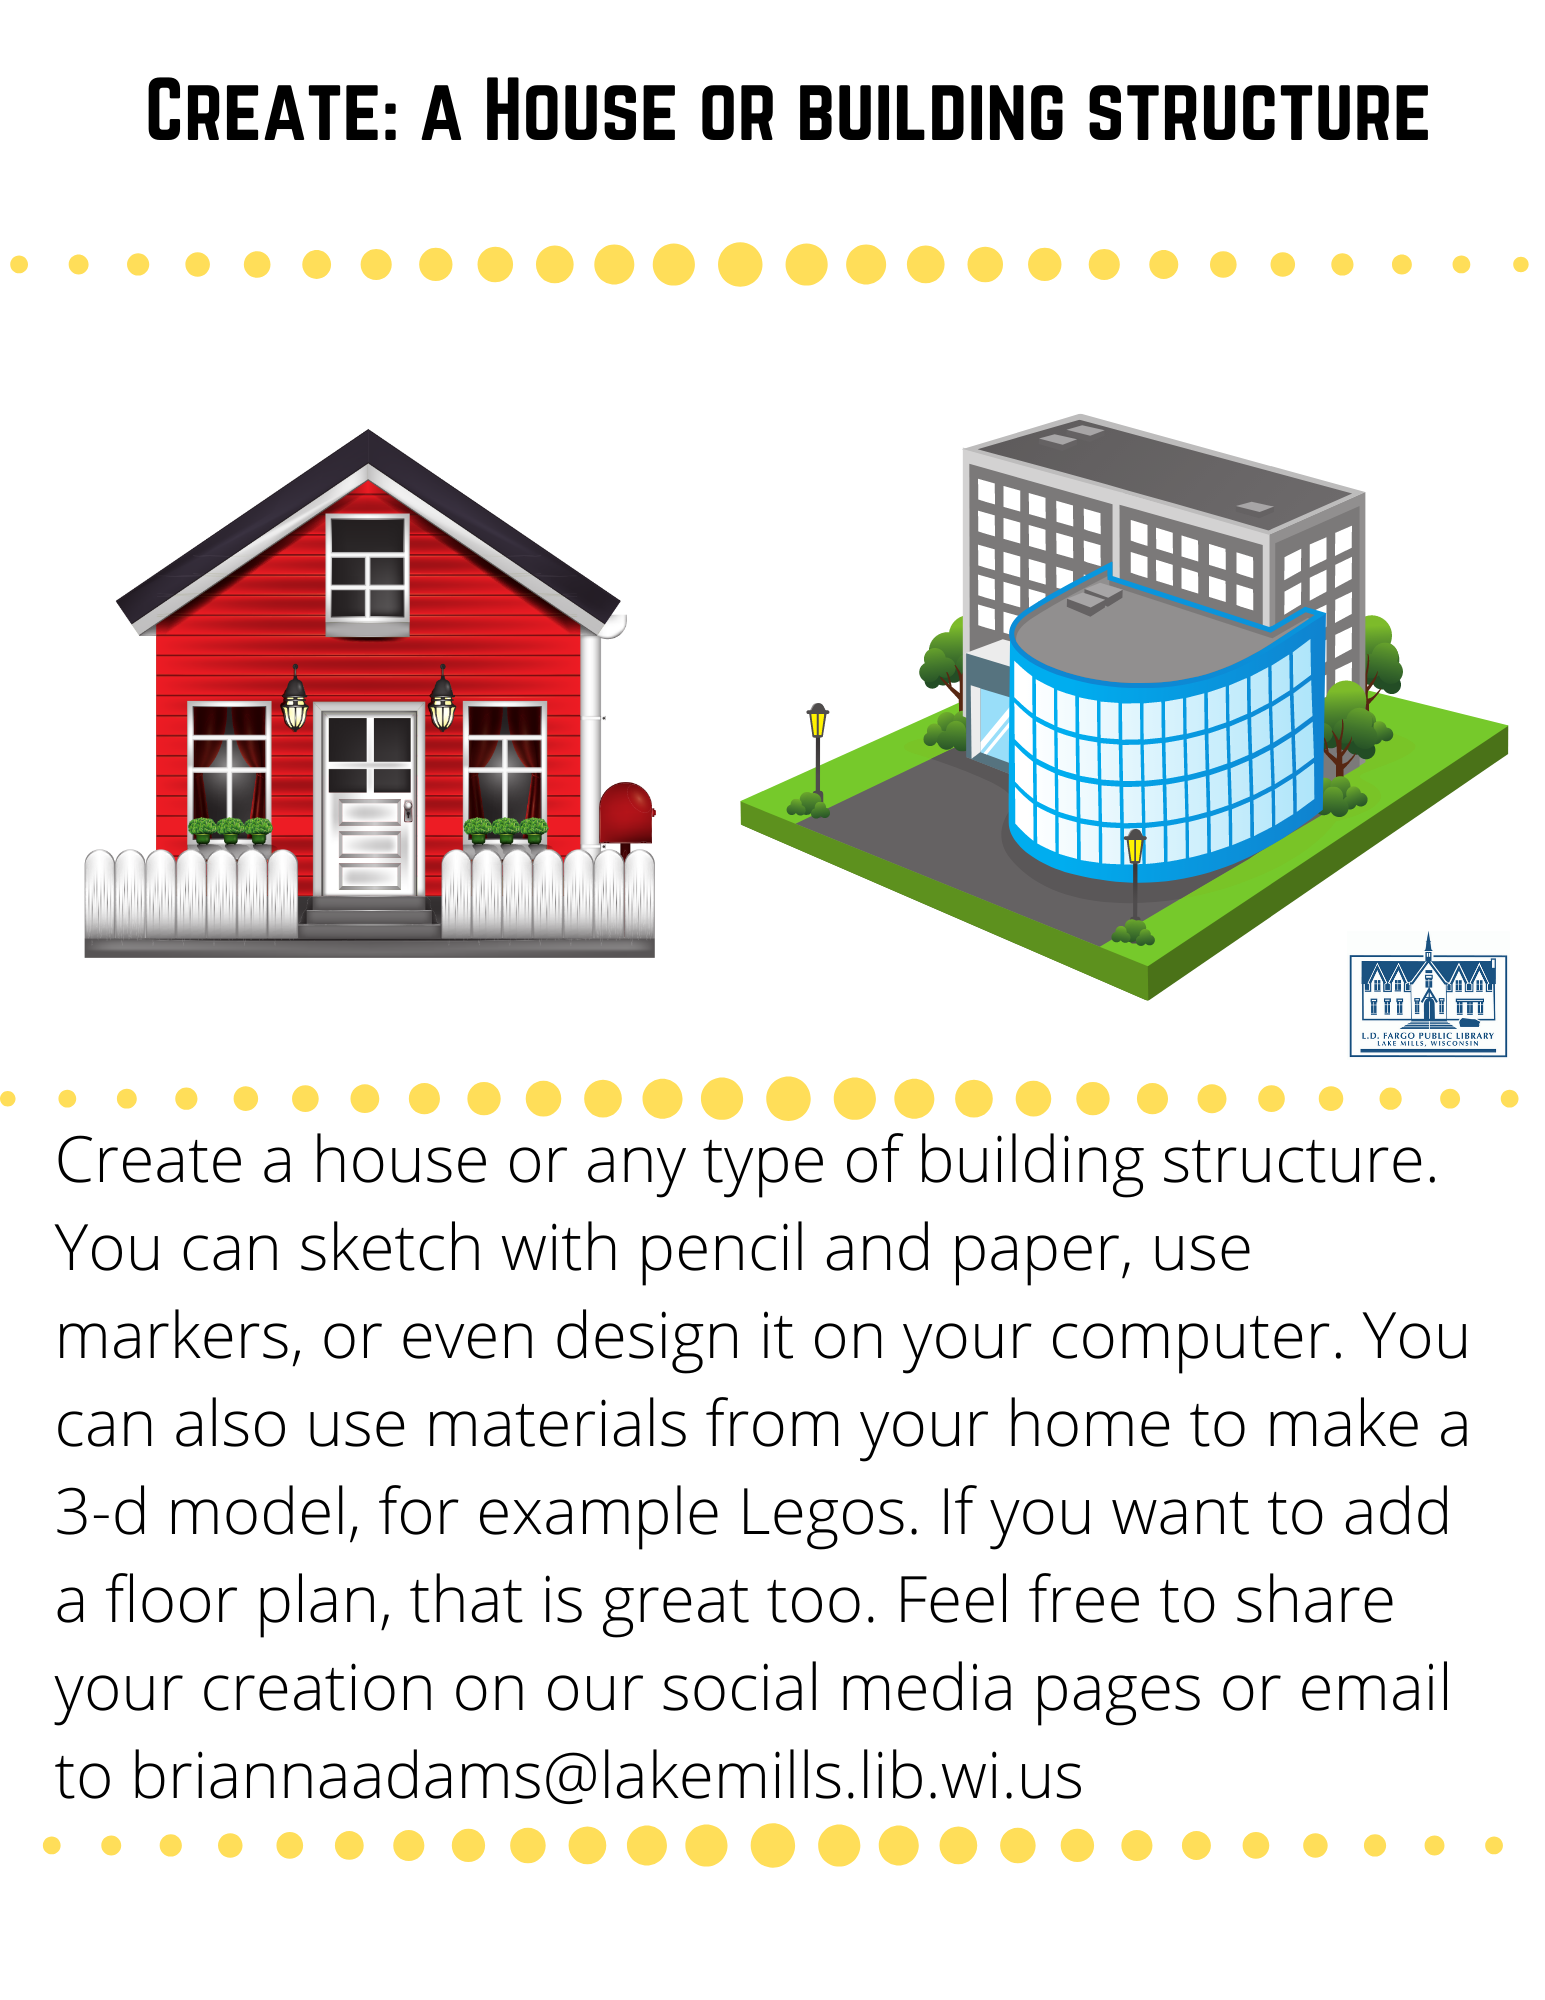 Create: a House or building structure  Create a house or any type of building structure.  You can sketch with pencil and paper, use markers, or even design it on your computer. You can also use materials from your home to make a 3-d model, for example Legos. If you want to add a floor plan, that is great too. Feel free to share your creation on our social media pages or email to briannaadams@lakemills.lib.wi.us